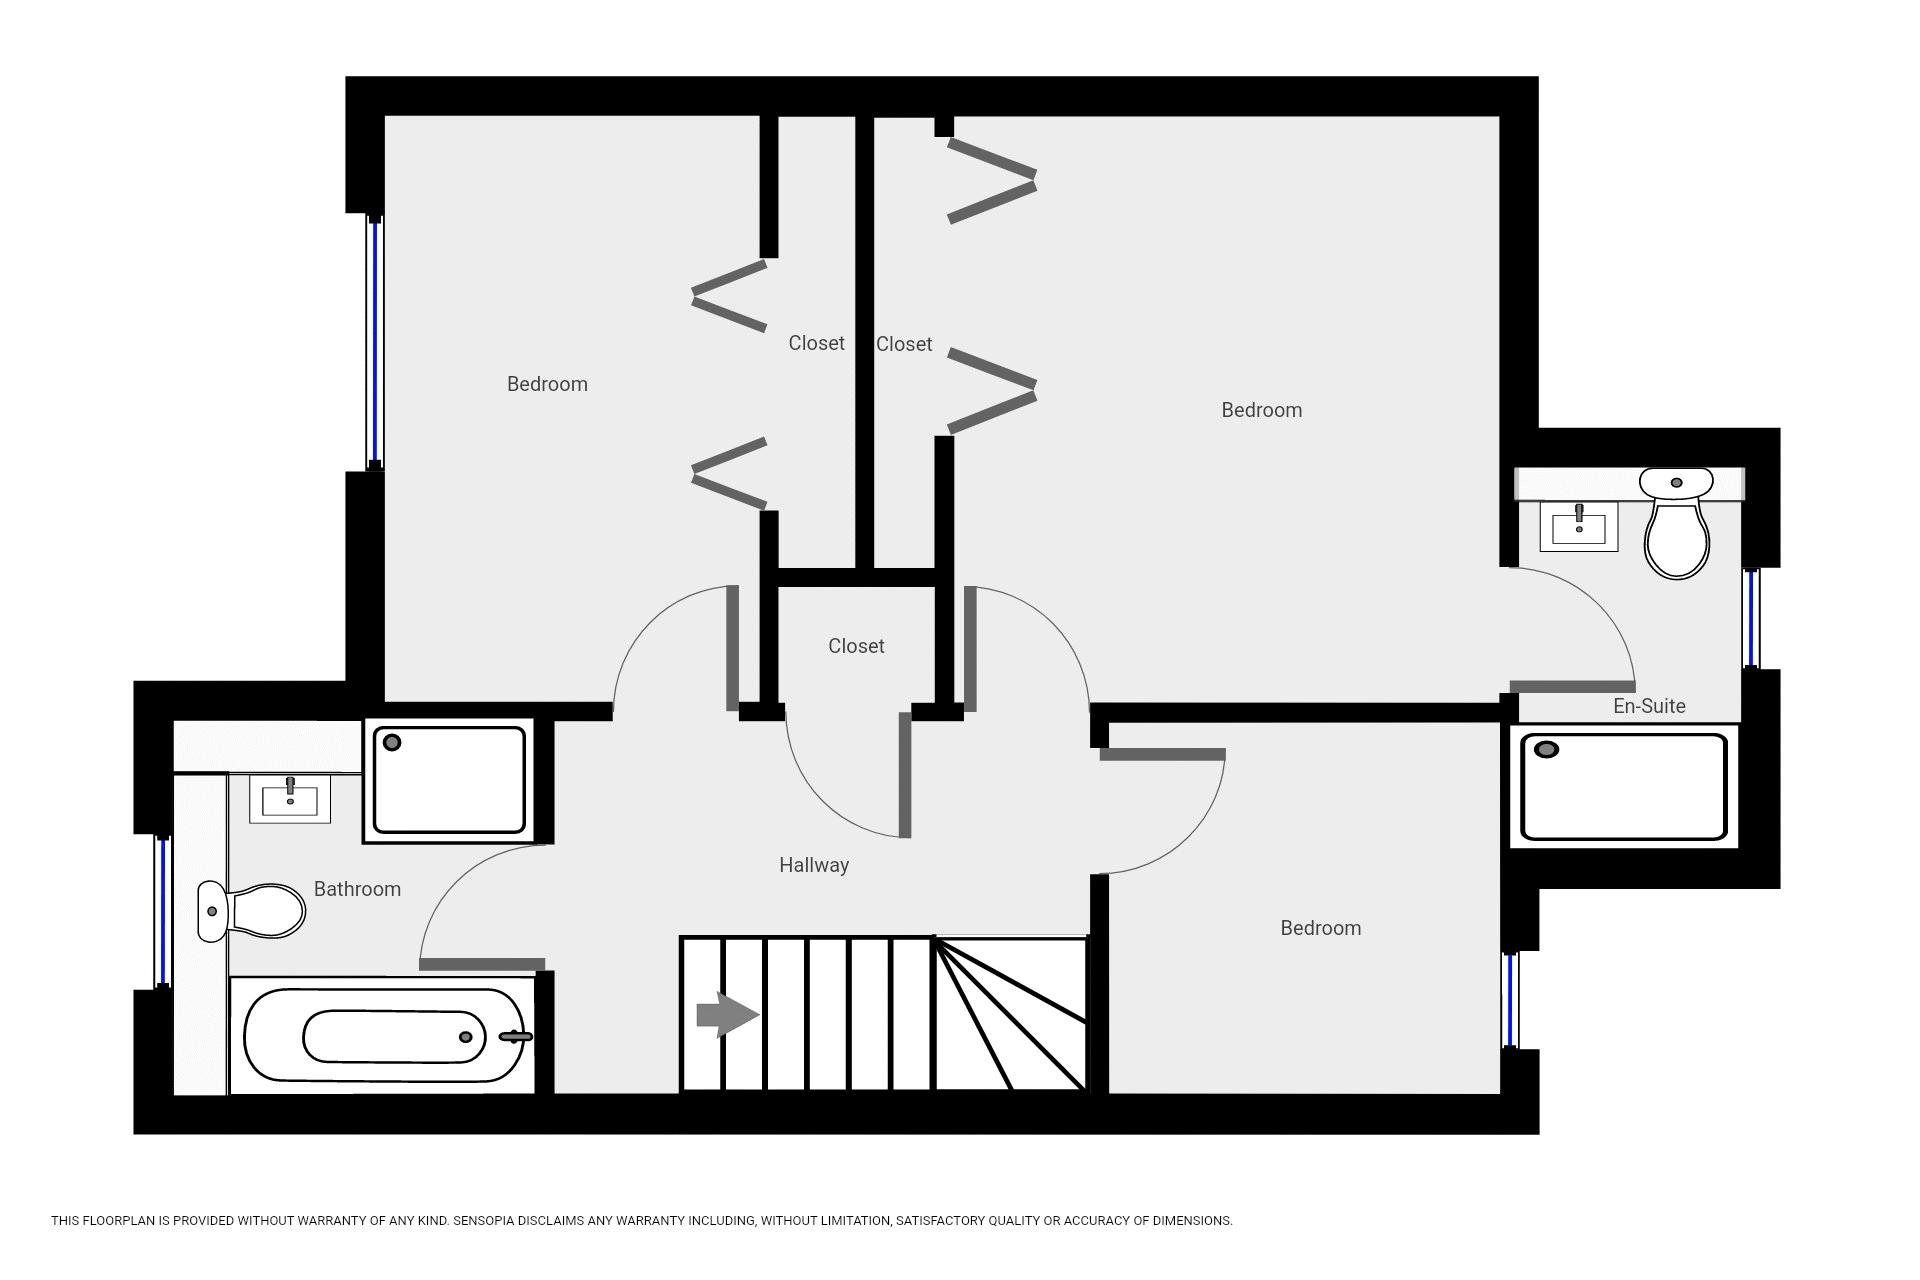 Floorplan First Floor